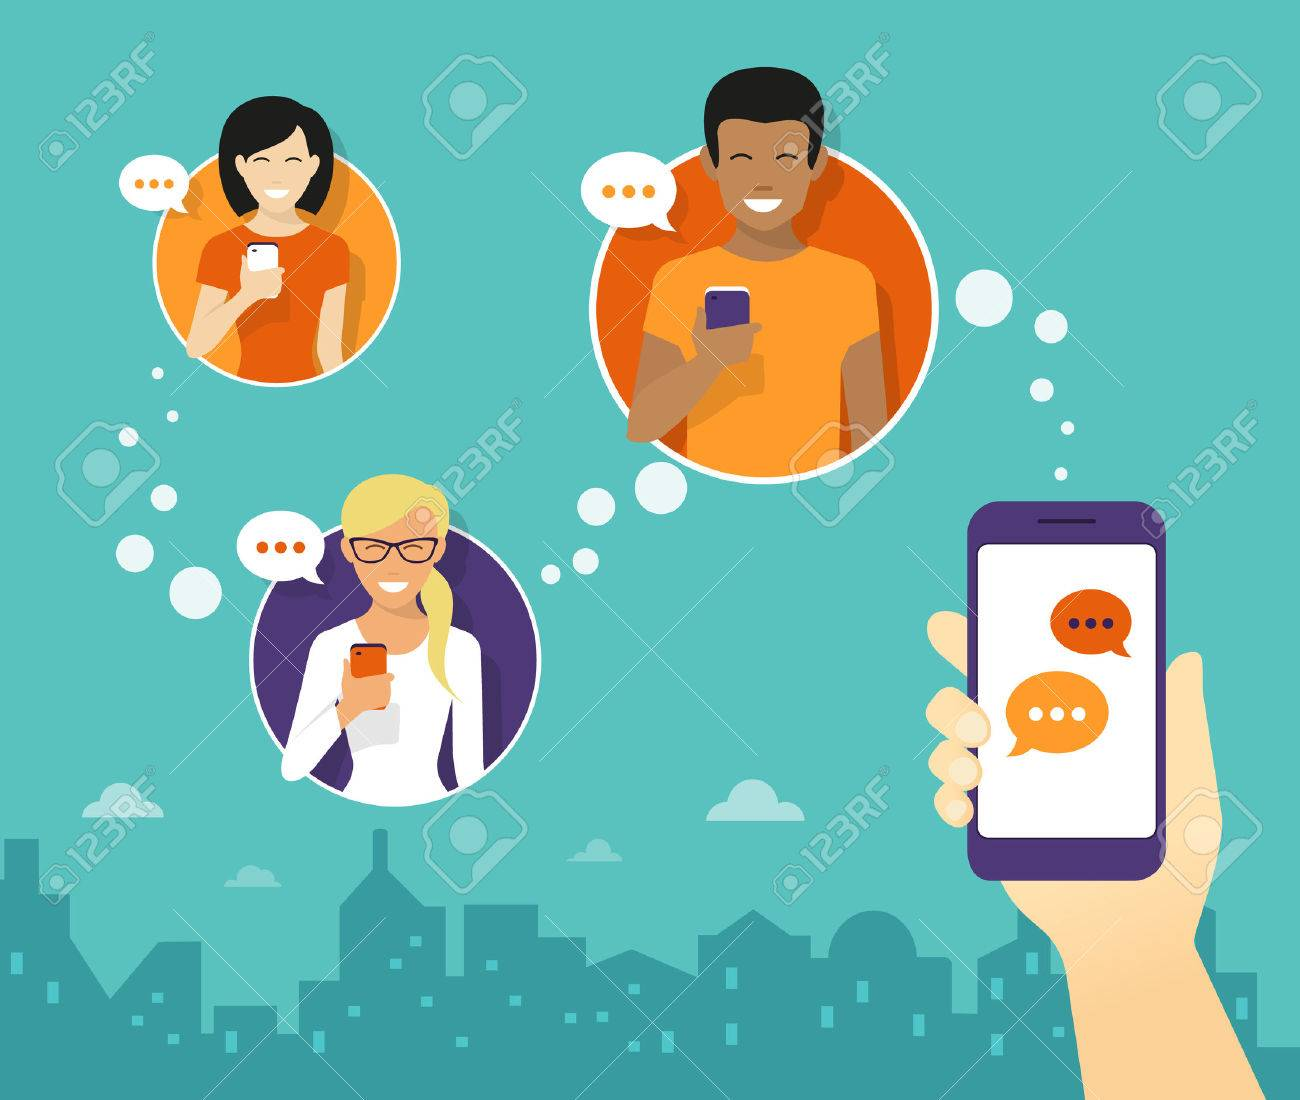 Human hand hold a smartphone and sending messages to friends via messenger app. Flat illustration - 47326055